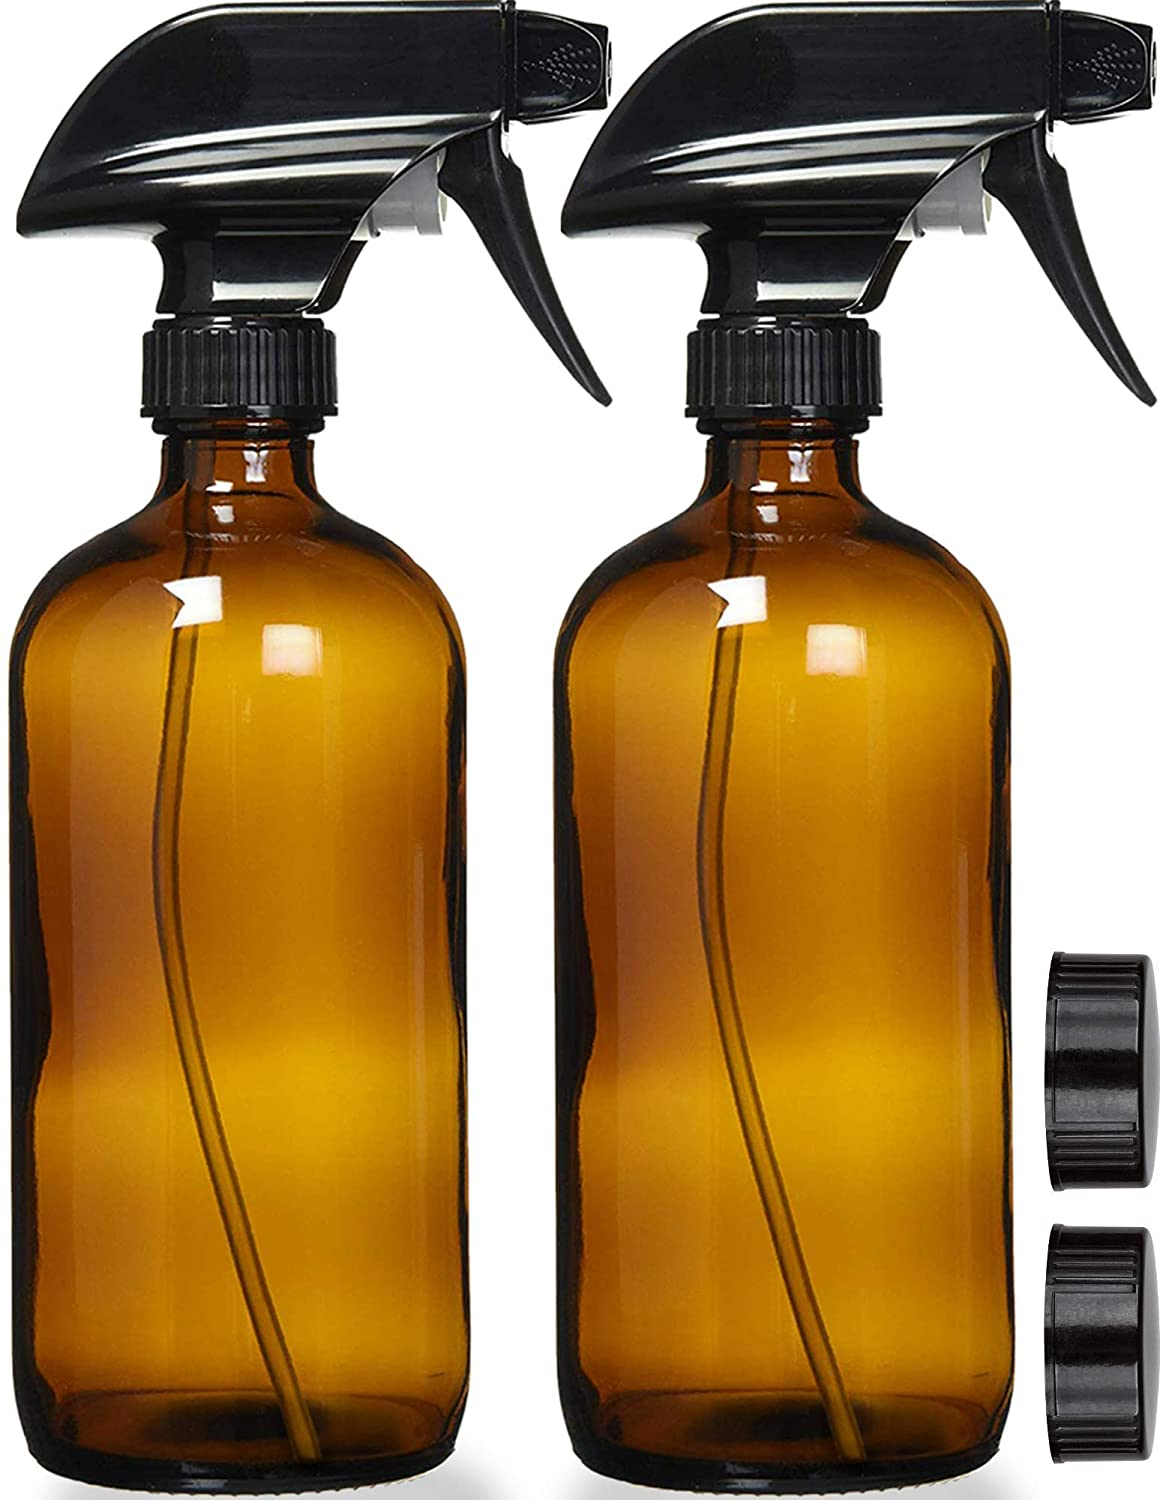 Sally's Organics Amber Glass Spray Bottle, 2-Pack